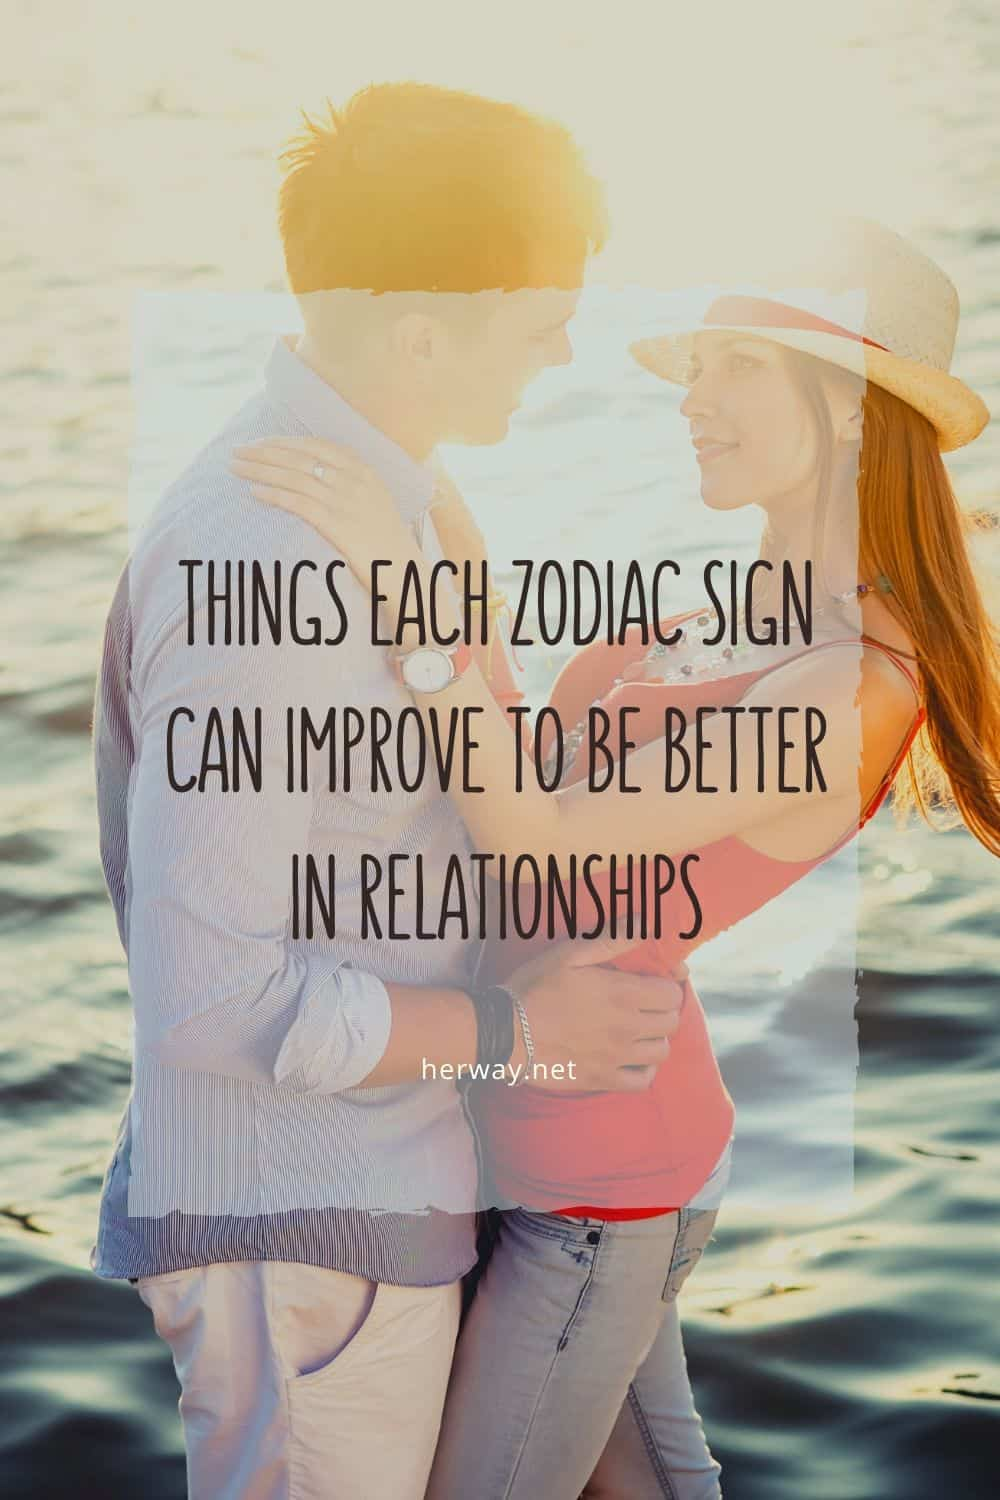 THINGS EACH ZODIAC SIGN CAN IMPROVE TO BE BETTER IN RELATIONSHIPS